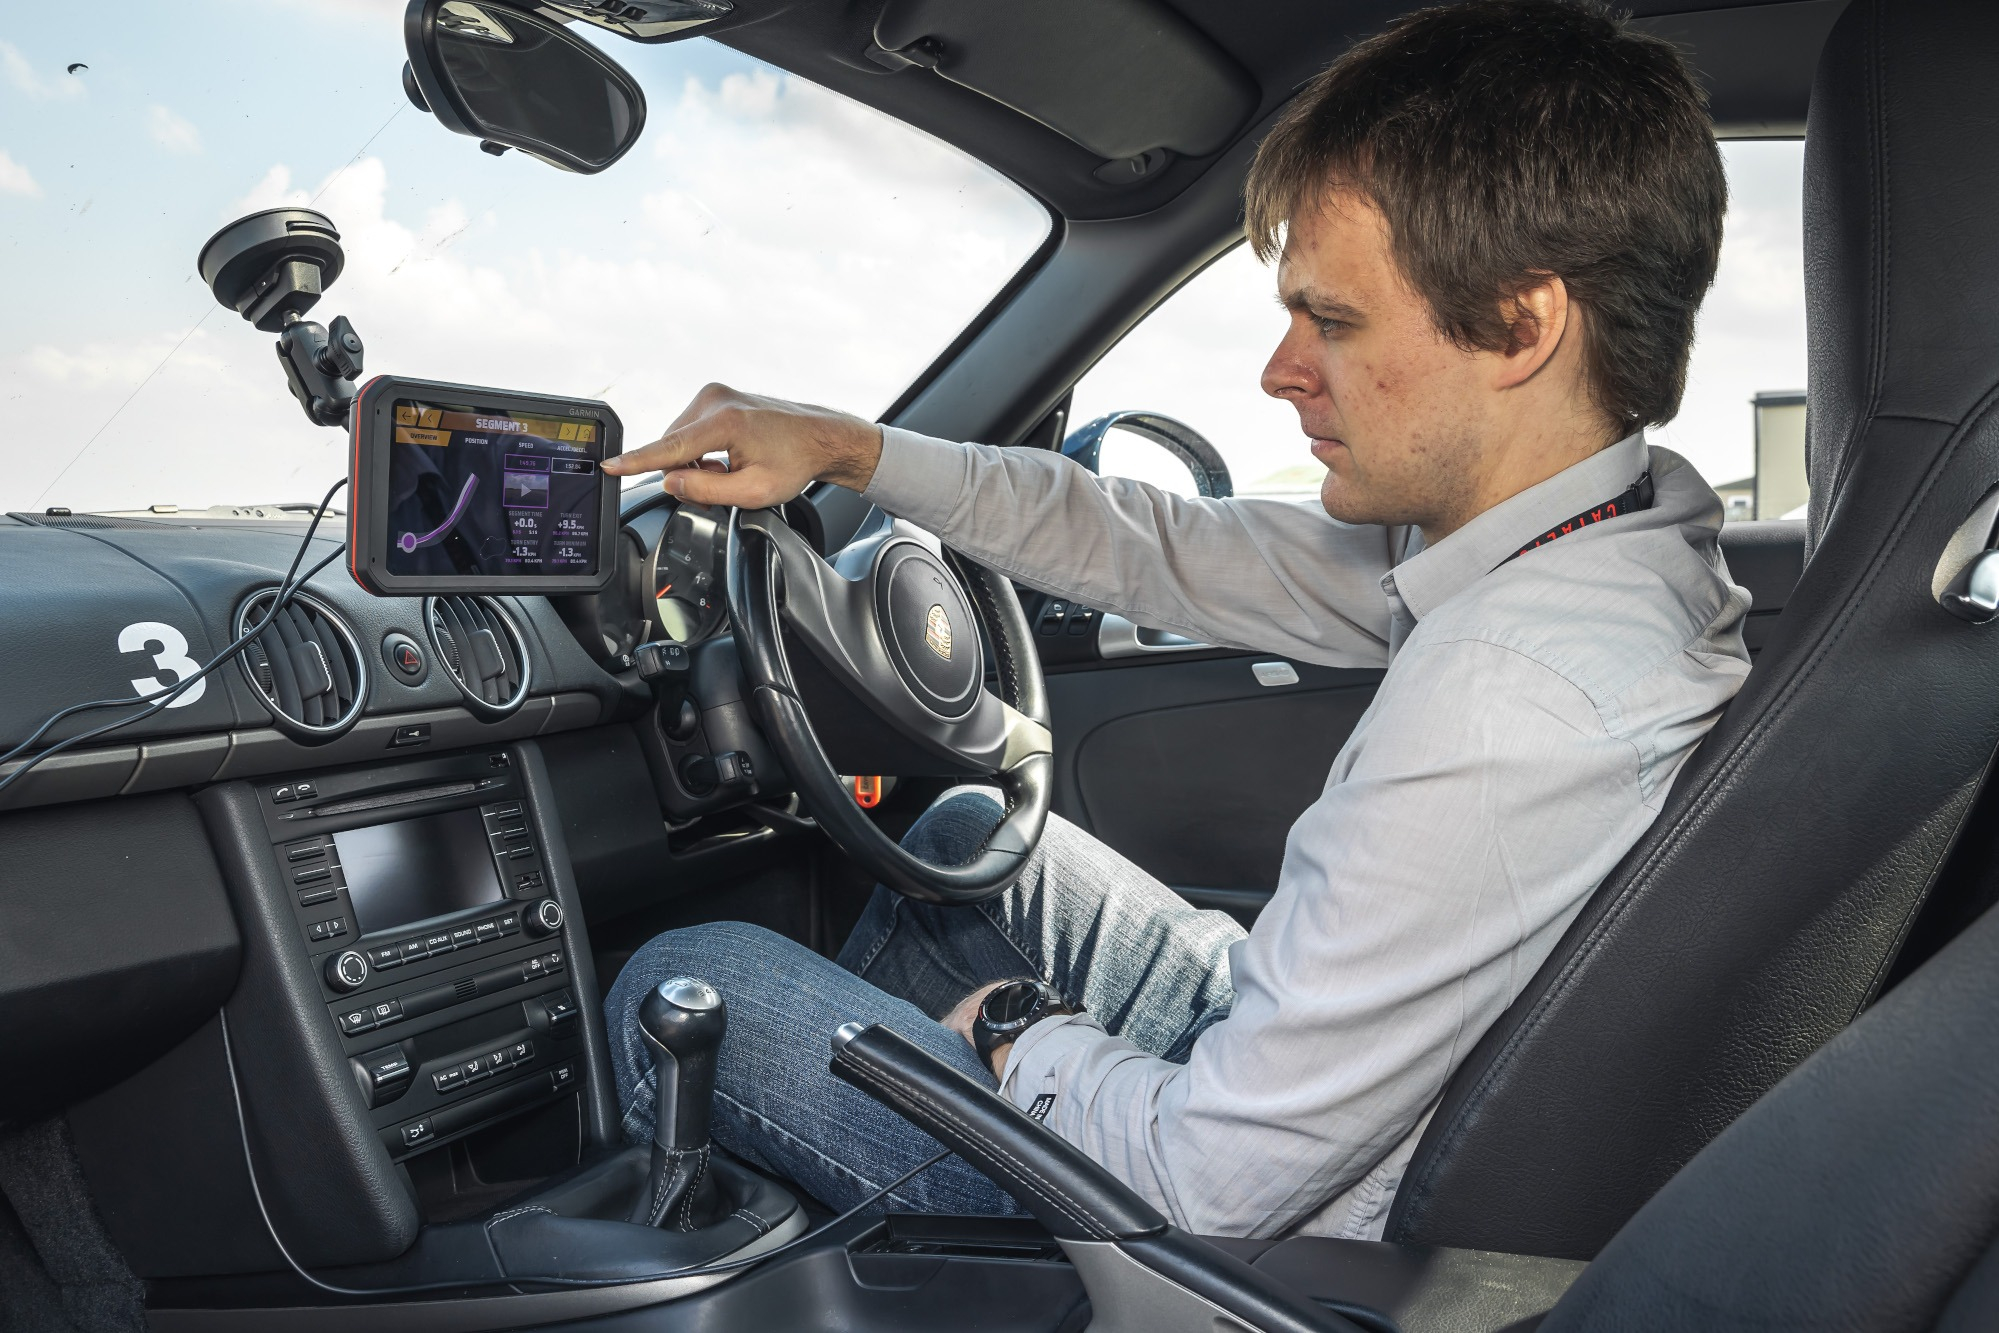 New Garmin tool helps drivers to quickly work out where they can improve